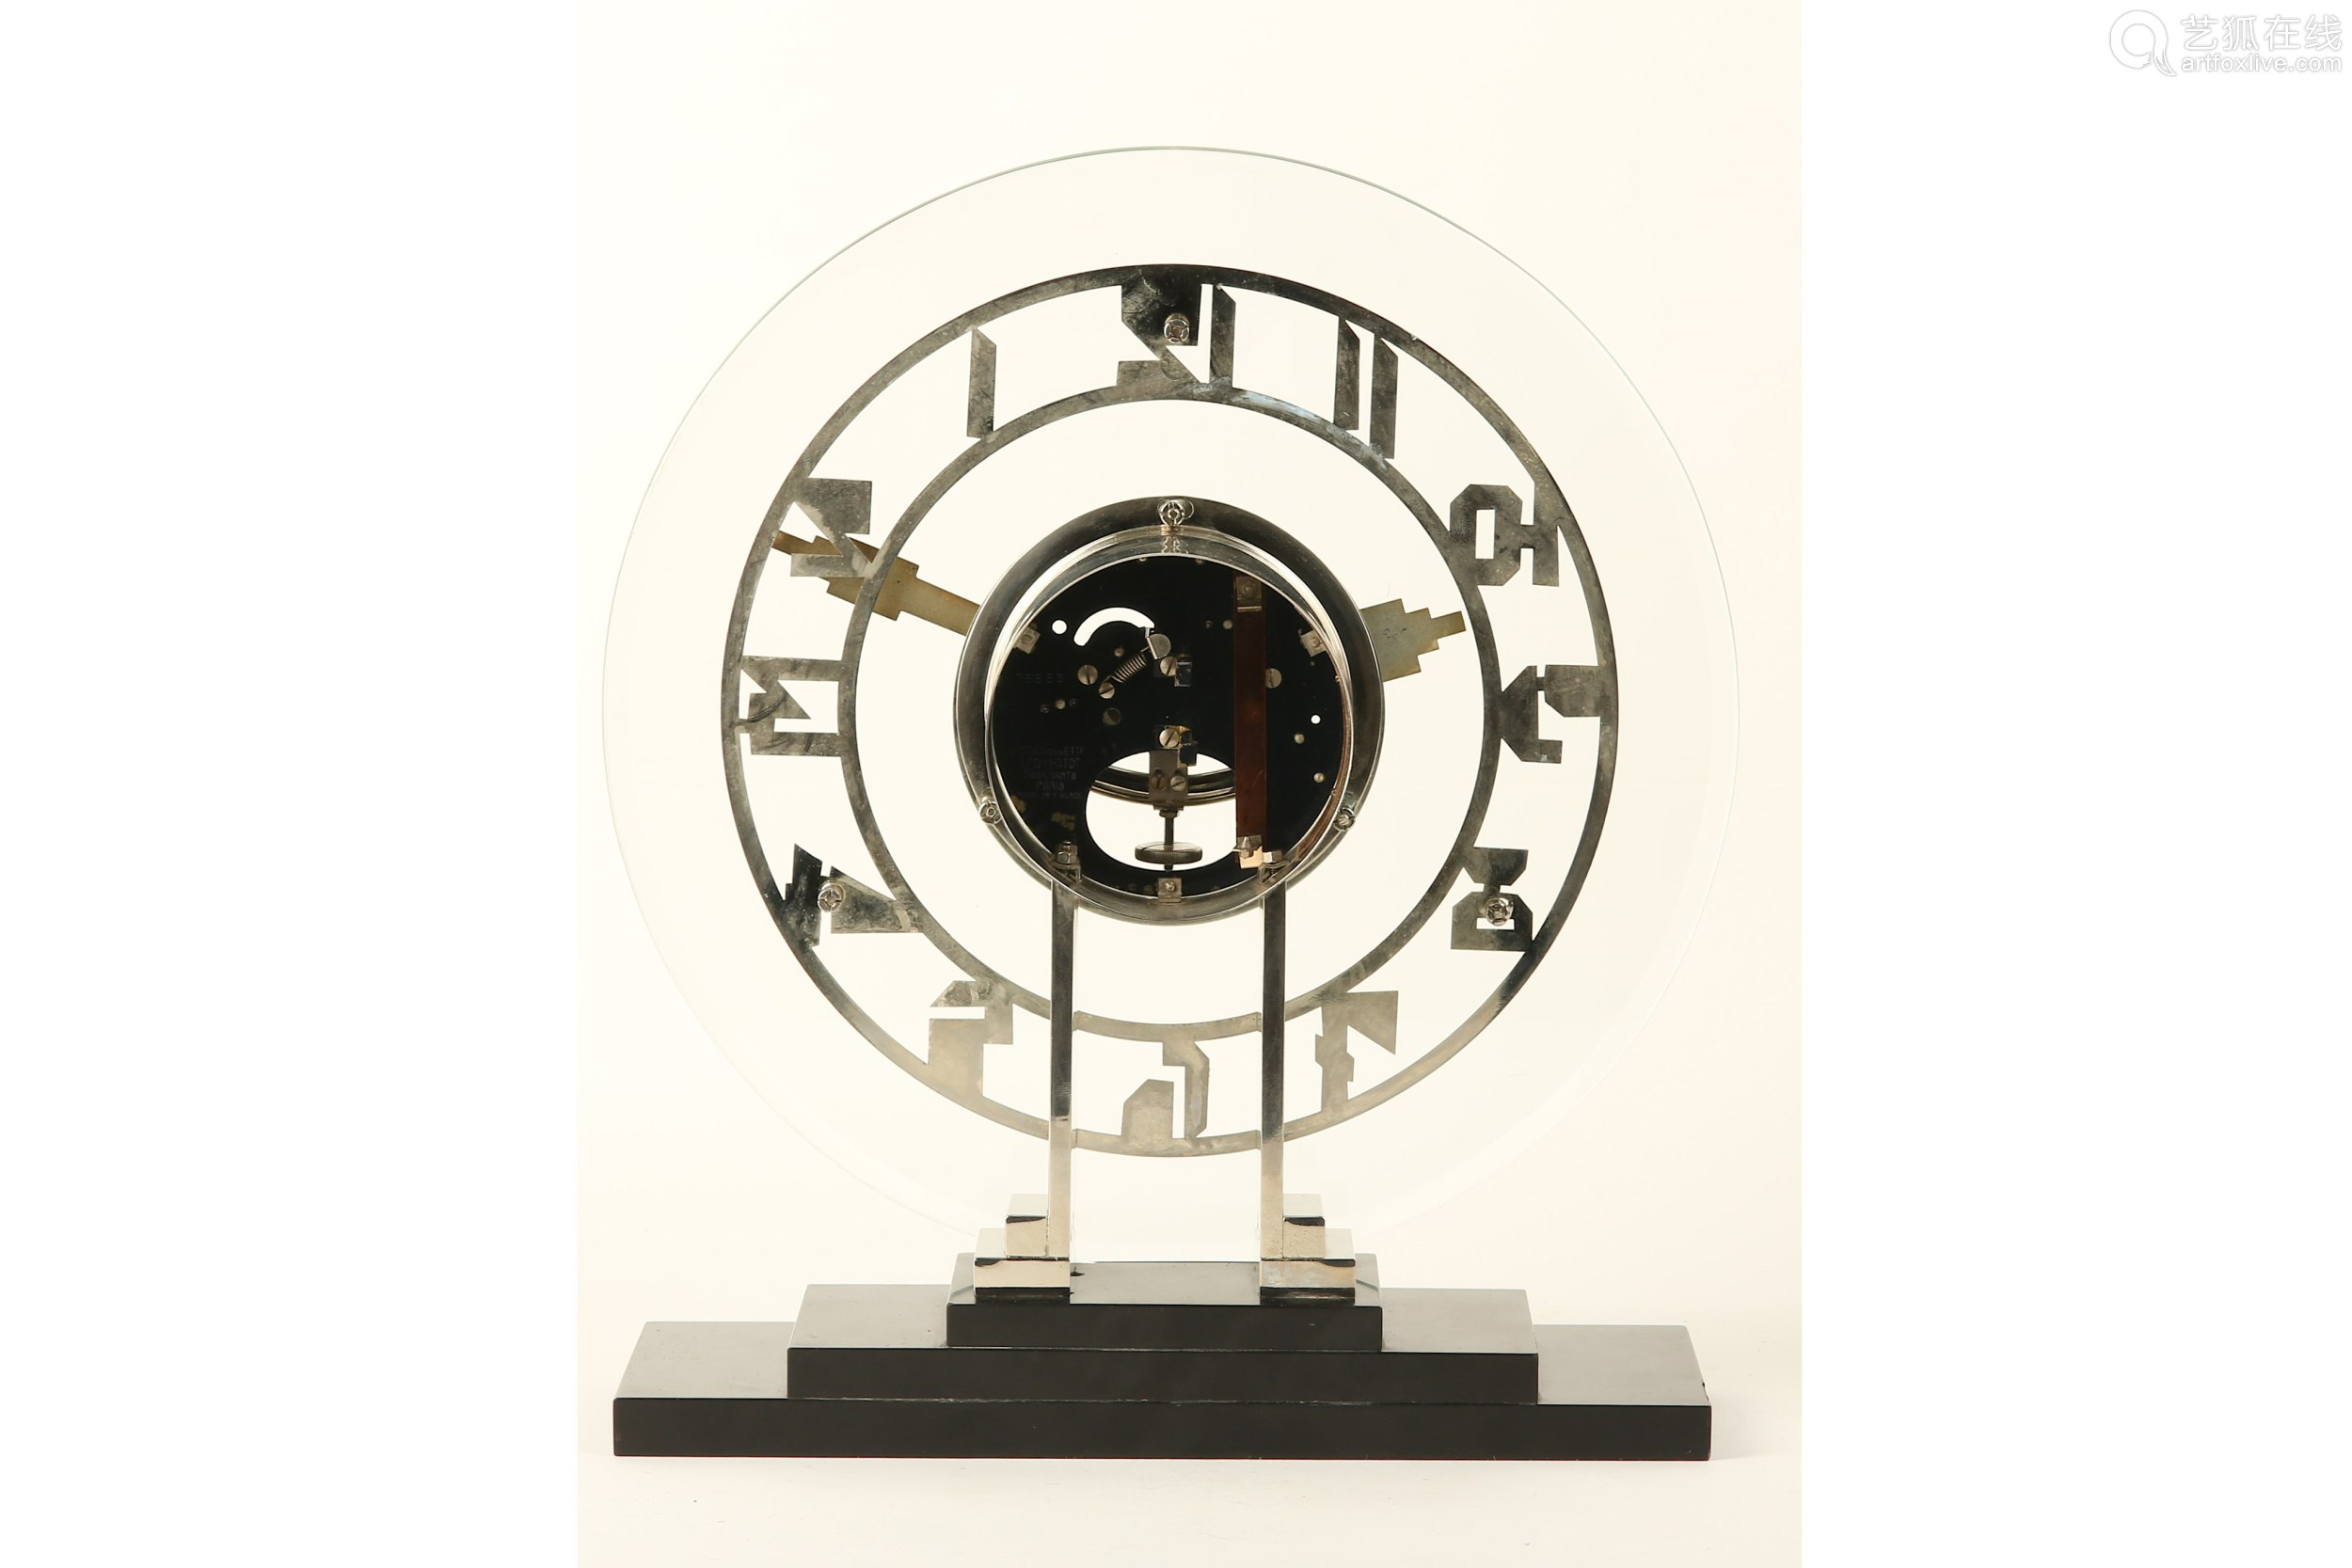 AN EARLY 20TH CENTURY ART DECO PERIOD GLASS AND CHROME ELECTRIC CLOCK BY LEON HATOT, PARIS (ATO),